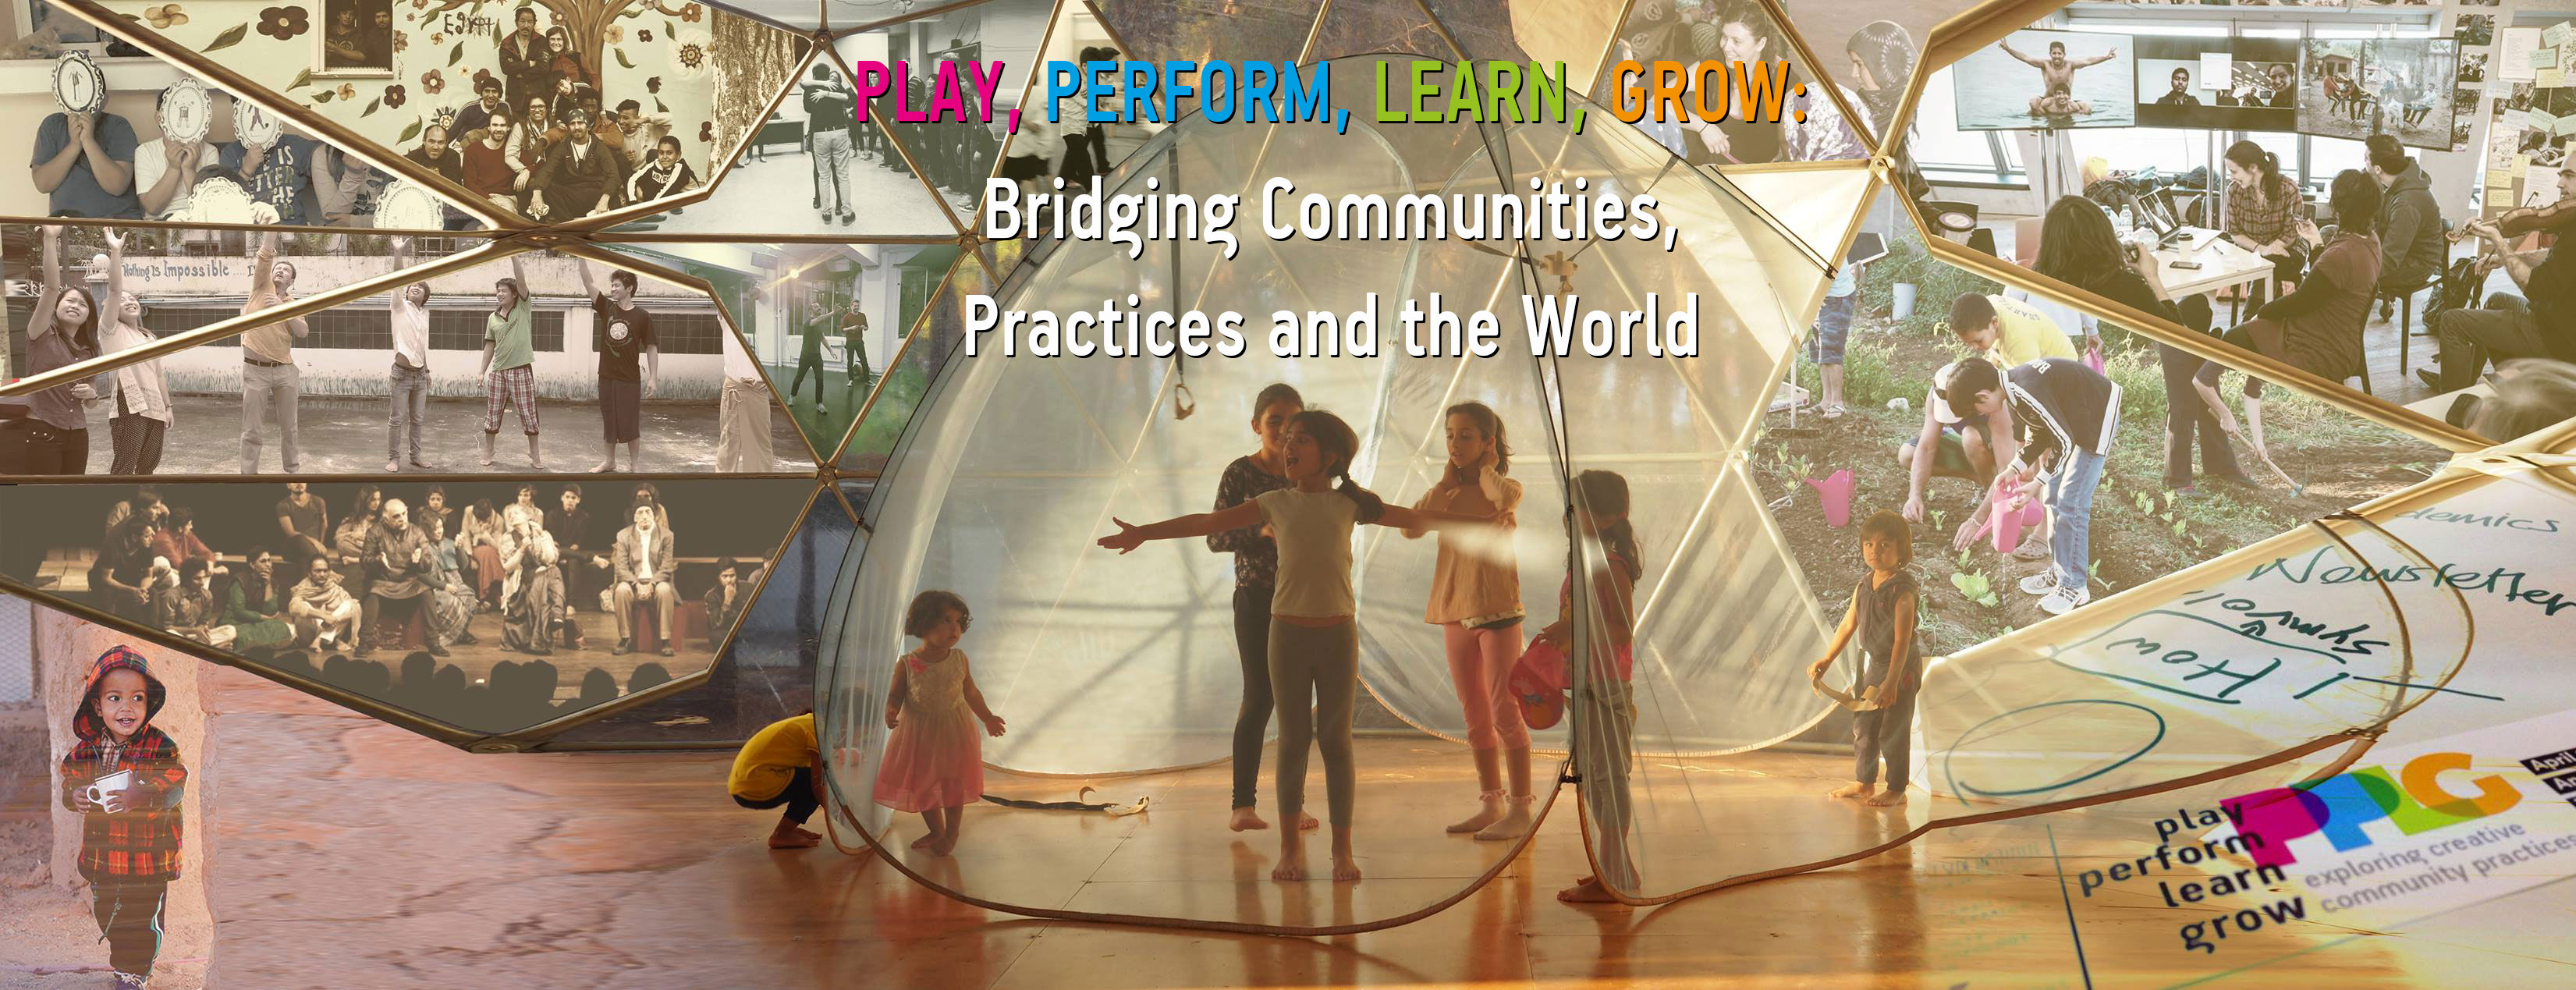 Play, Perform, Learn, Grow (PPLG) – Bridging Communities, Practices and the World